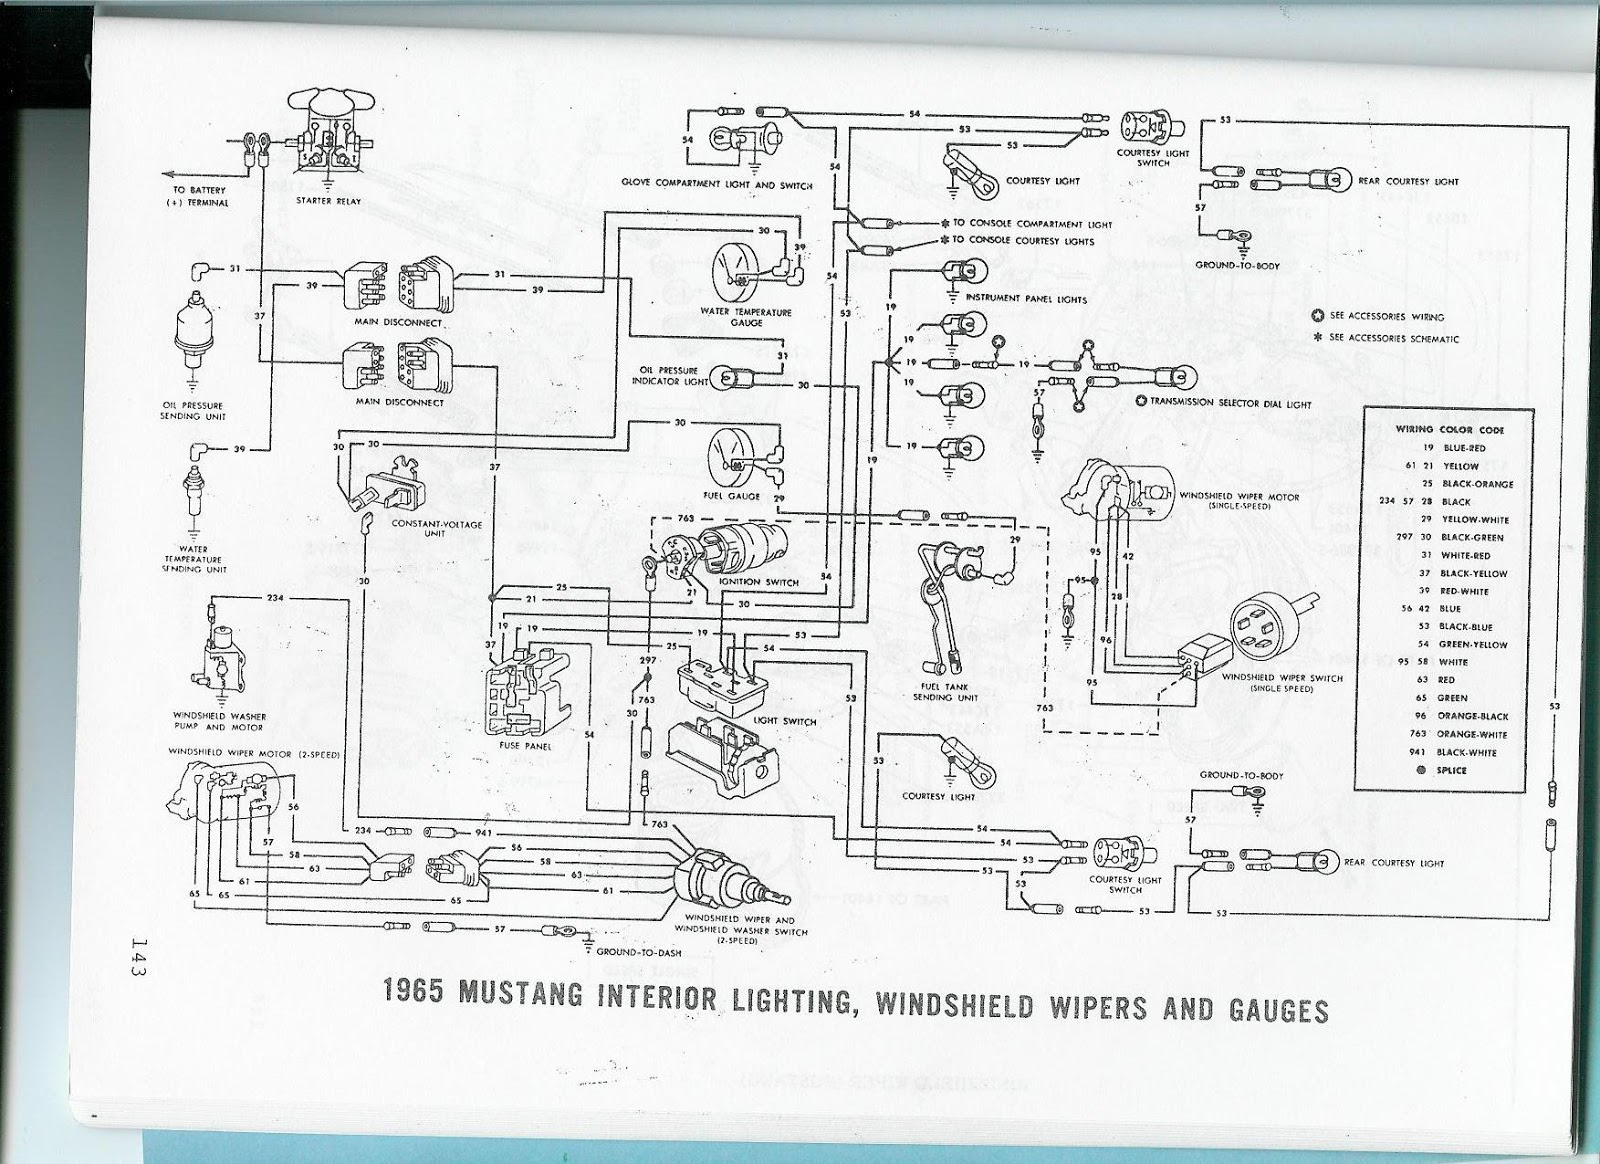 65+interior+lighting+and+gauges wiring diagram for 1965 mustang readingrat net 1966 mustang wiring diagrams at webbmarketing.co